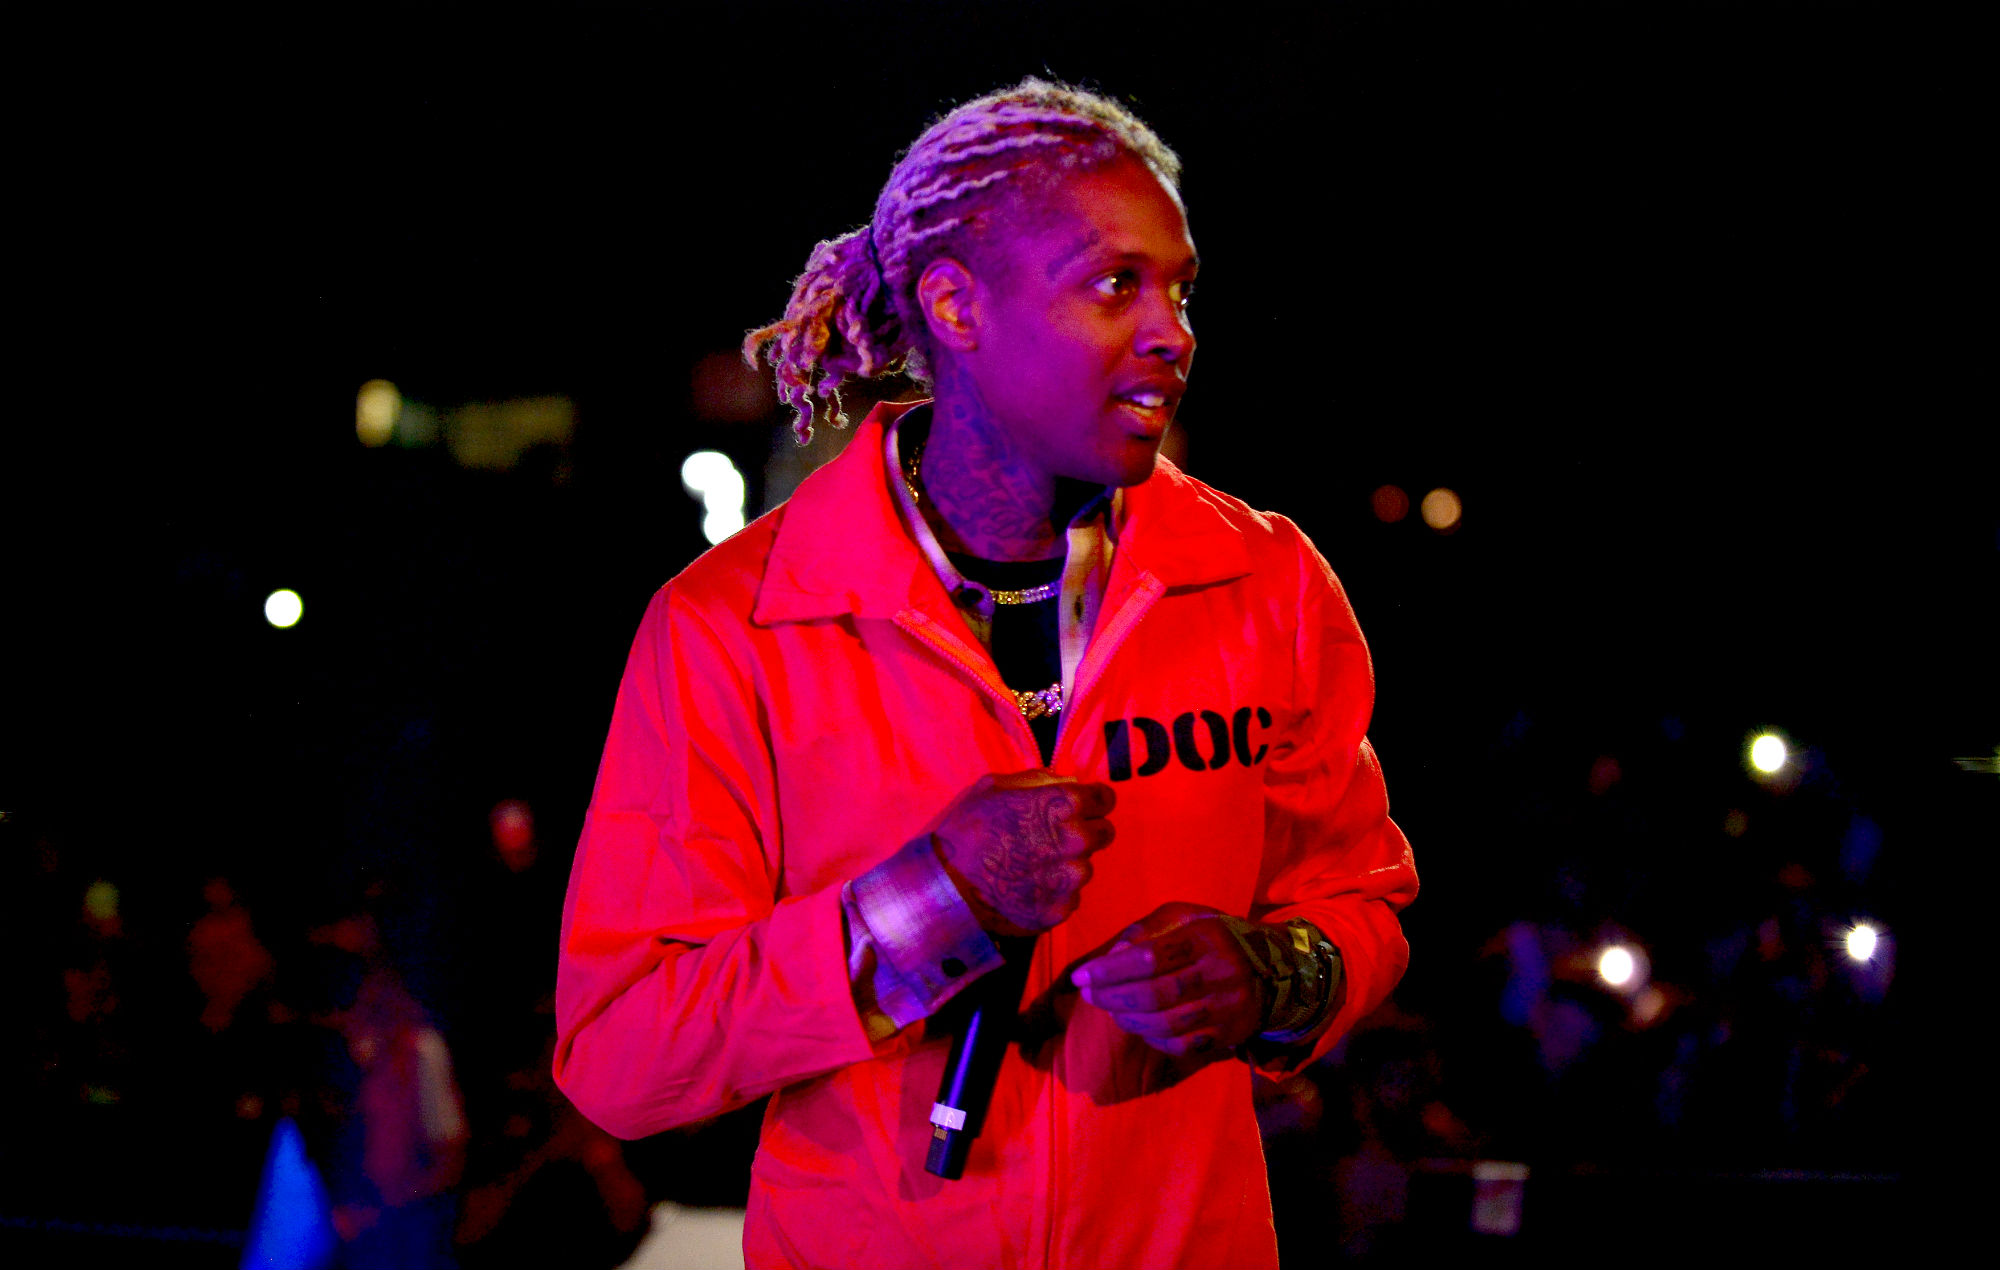 Fans react as Lil Durk's UK shows sell out in minutes